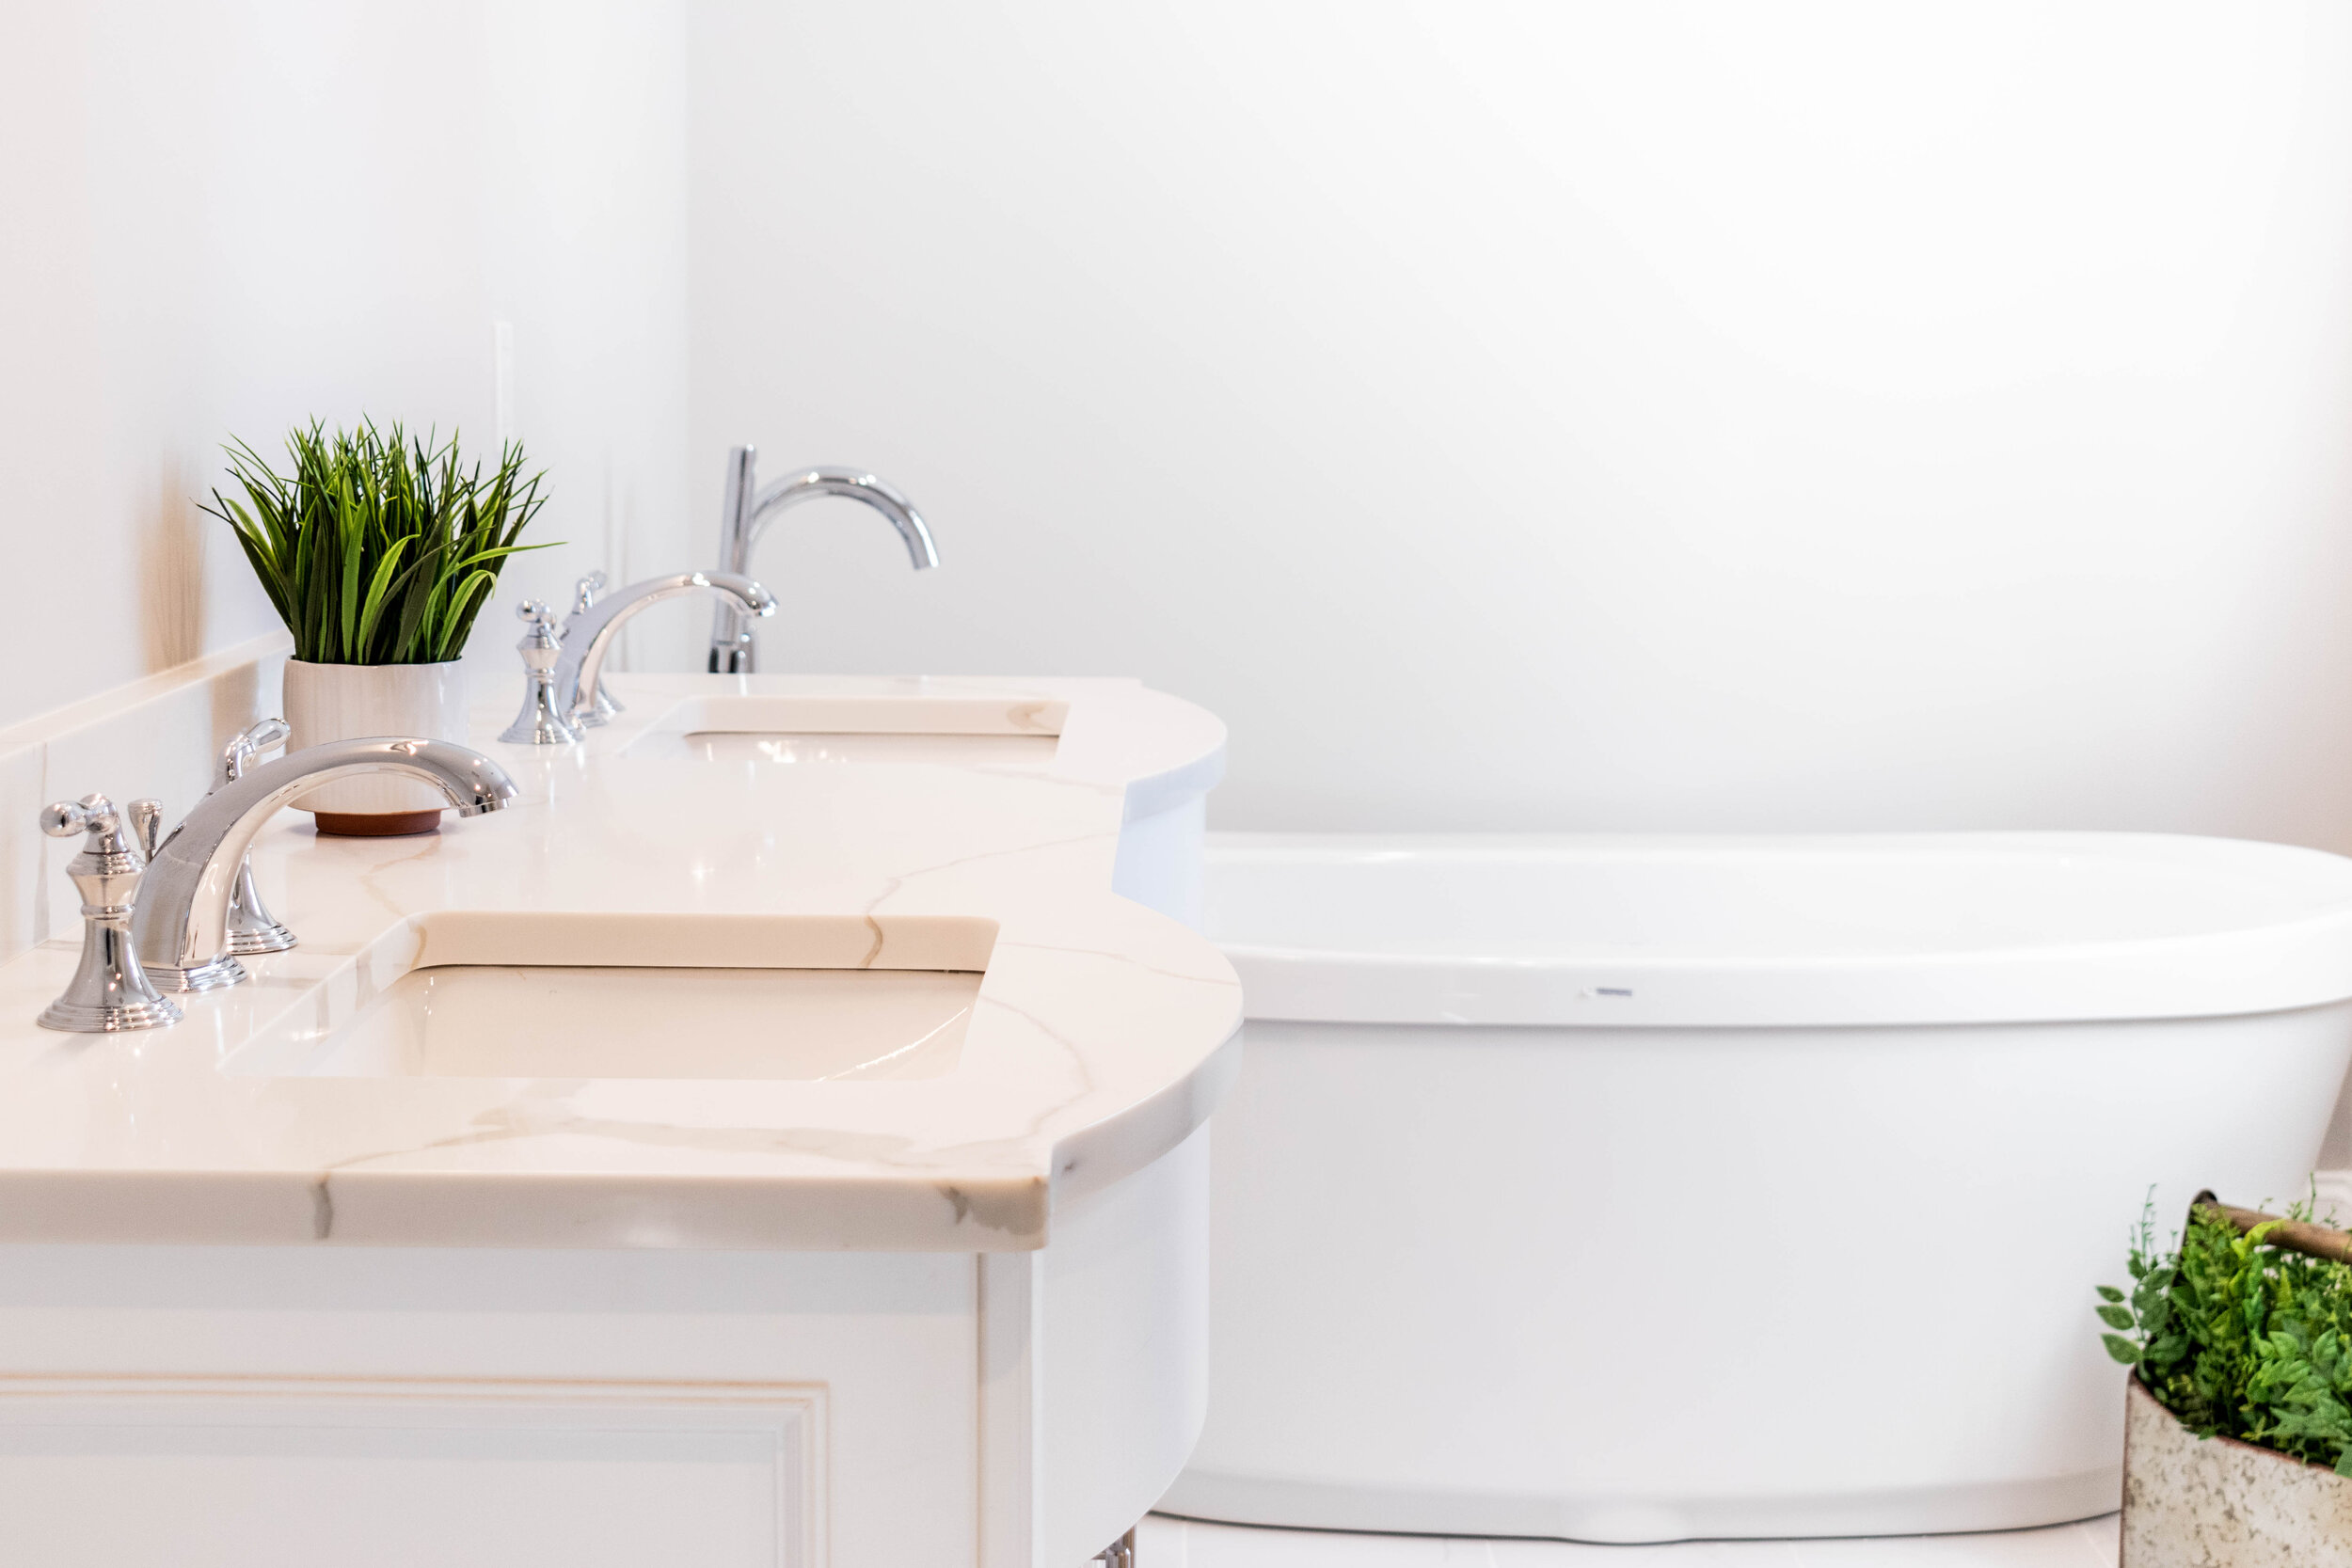 Material: Q-MSI Calacatta Classique (Bookmatched)  Thickness, Finish & Stone Type: 3CM Polished Quartz  Edge: Eased  Sink: KP-23W